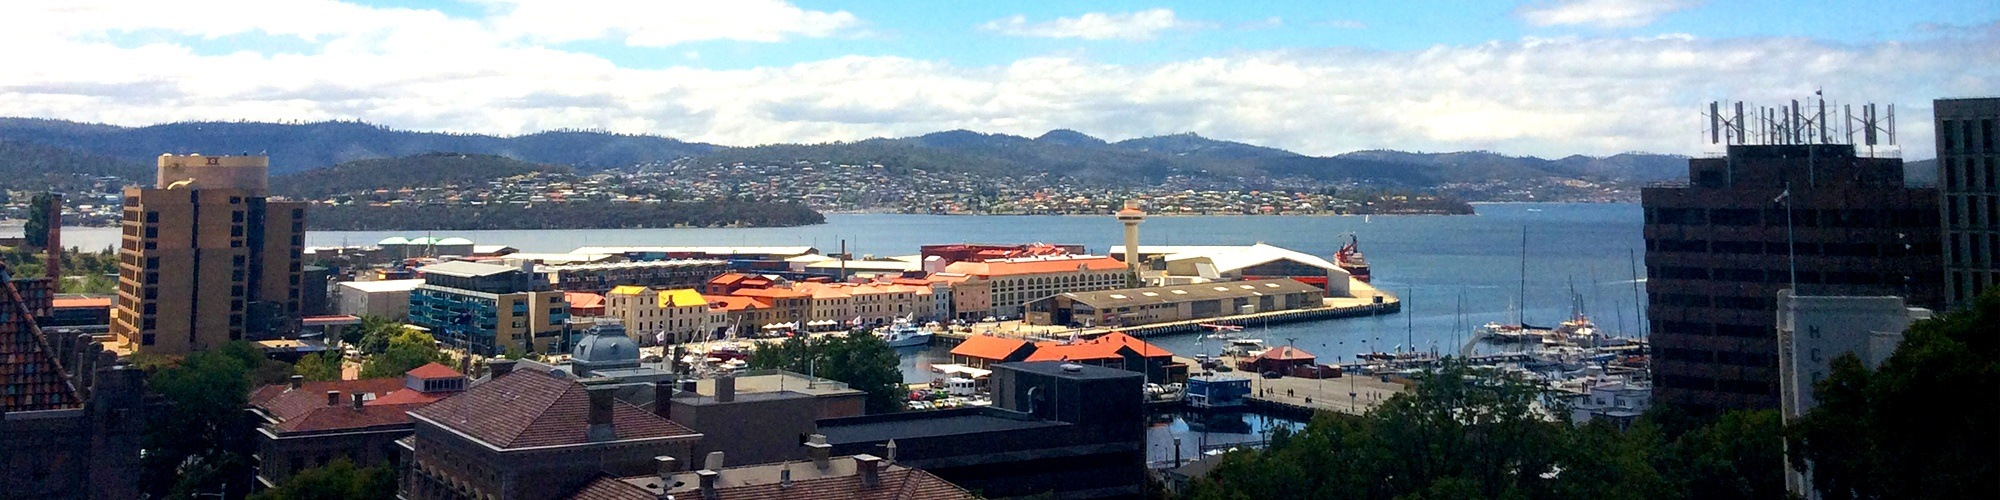 banner-reserve-bank-building-hobart-office-view-2.jpg